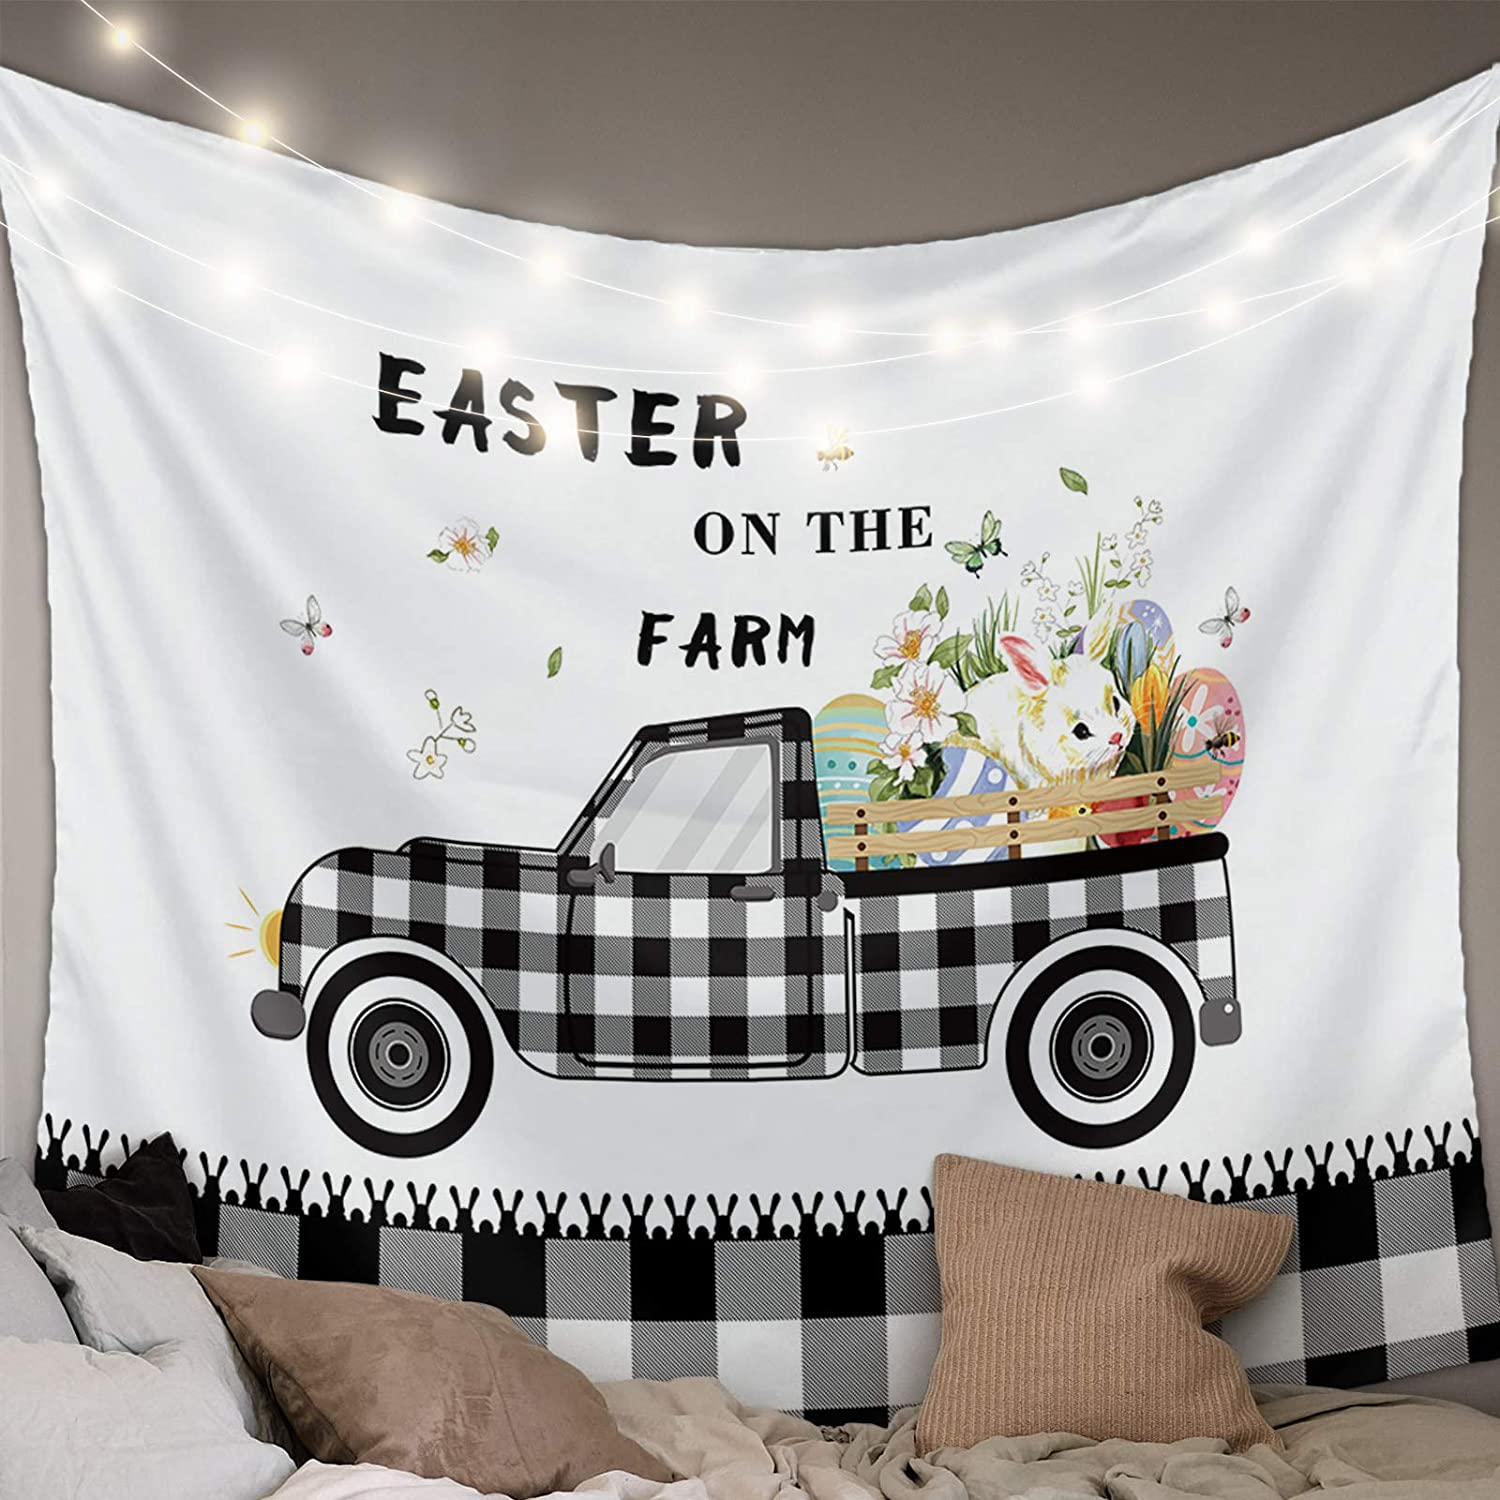 Advancey Wall Hanging Bedding Tapestry Happy Easter Farm Egg Naive Bunny Black White Buffalo Plaid Truck Tapestry Wall Decor Blanket Bedspread Picnic Sheet Room Dorm Home Decor- 39''x59''